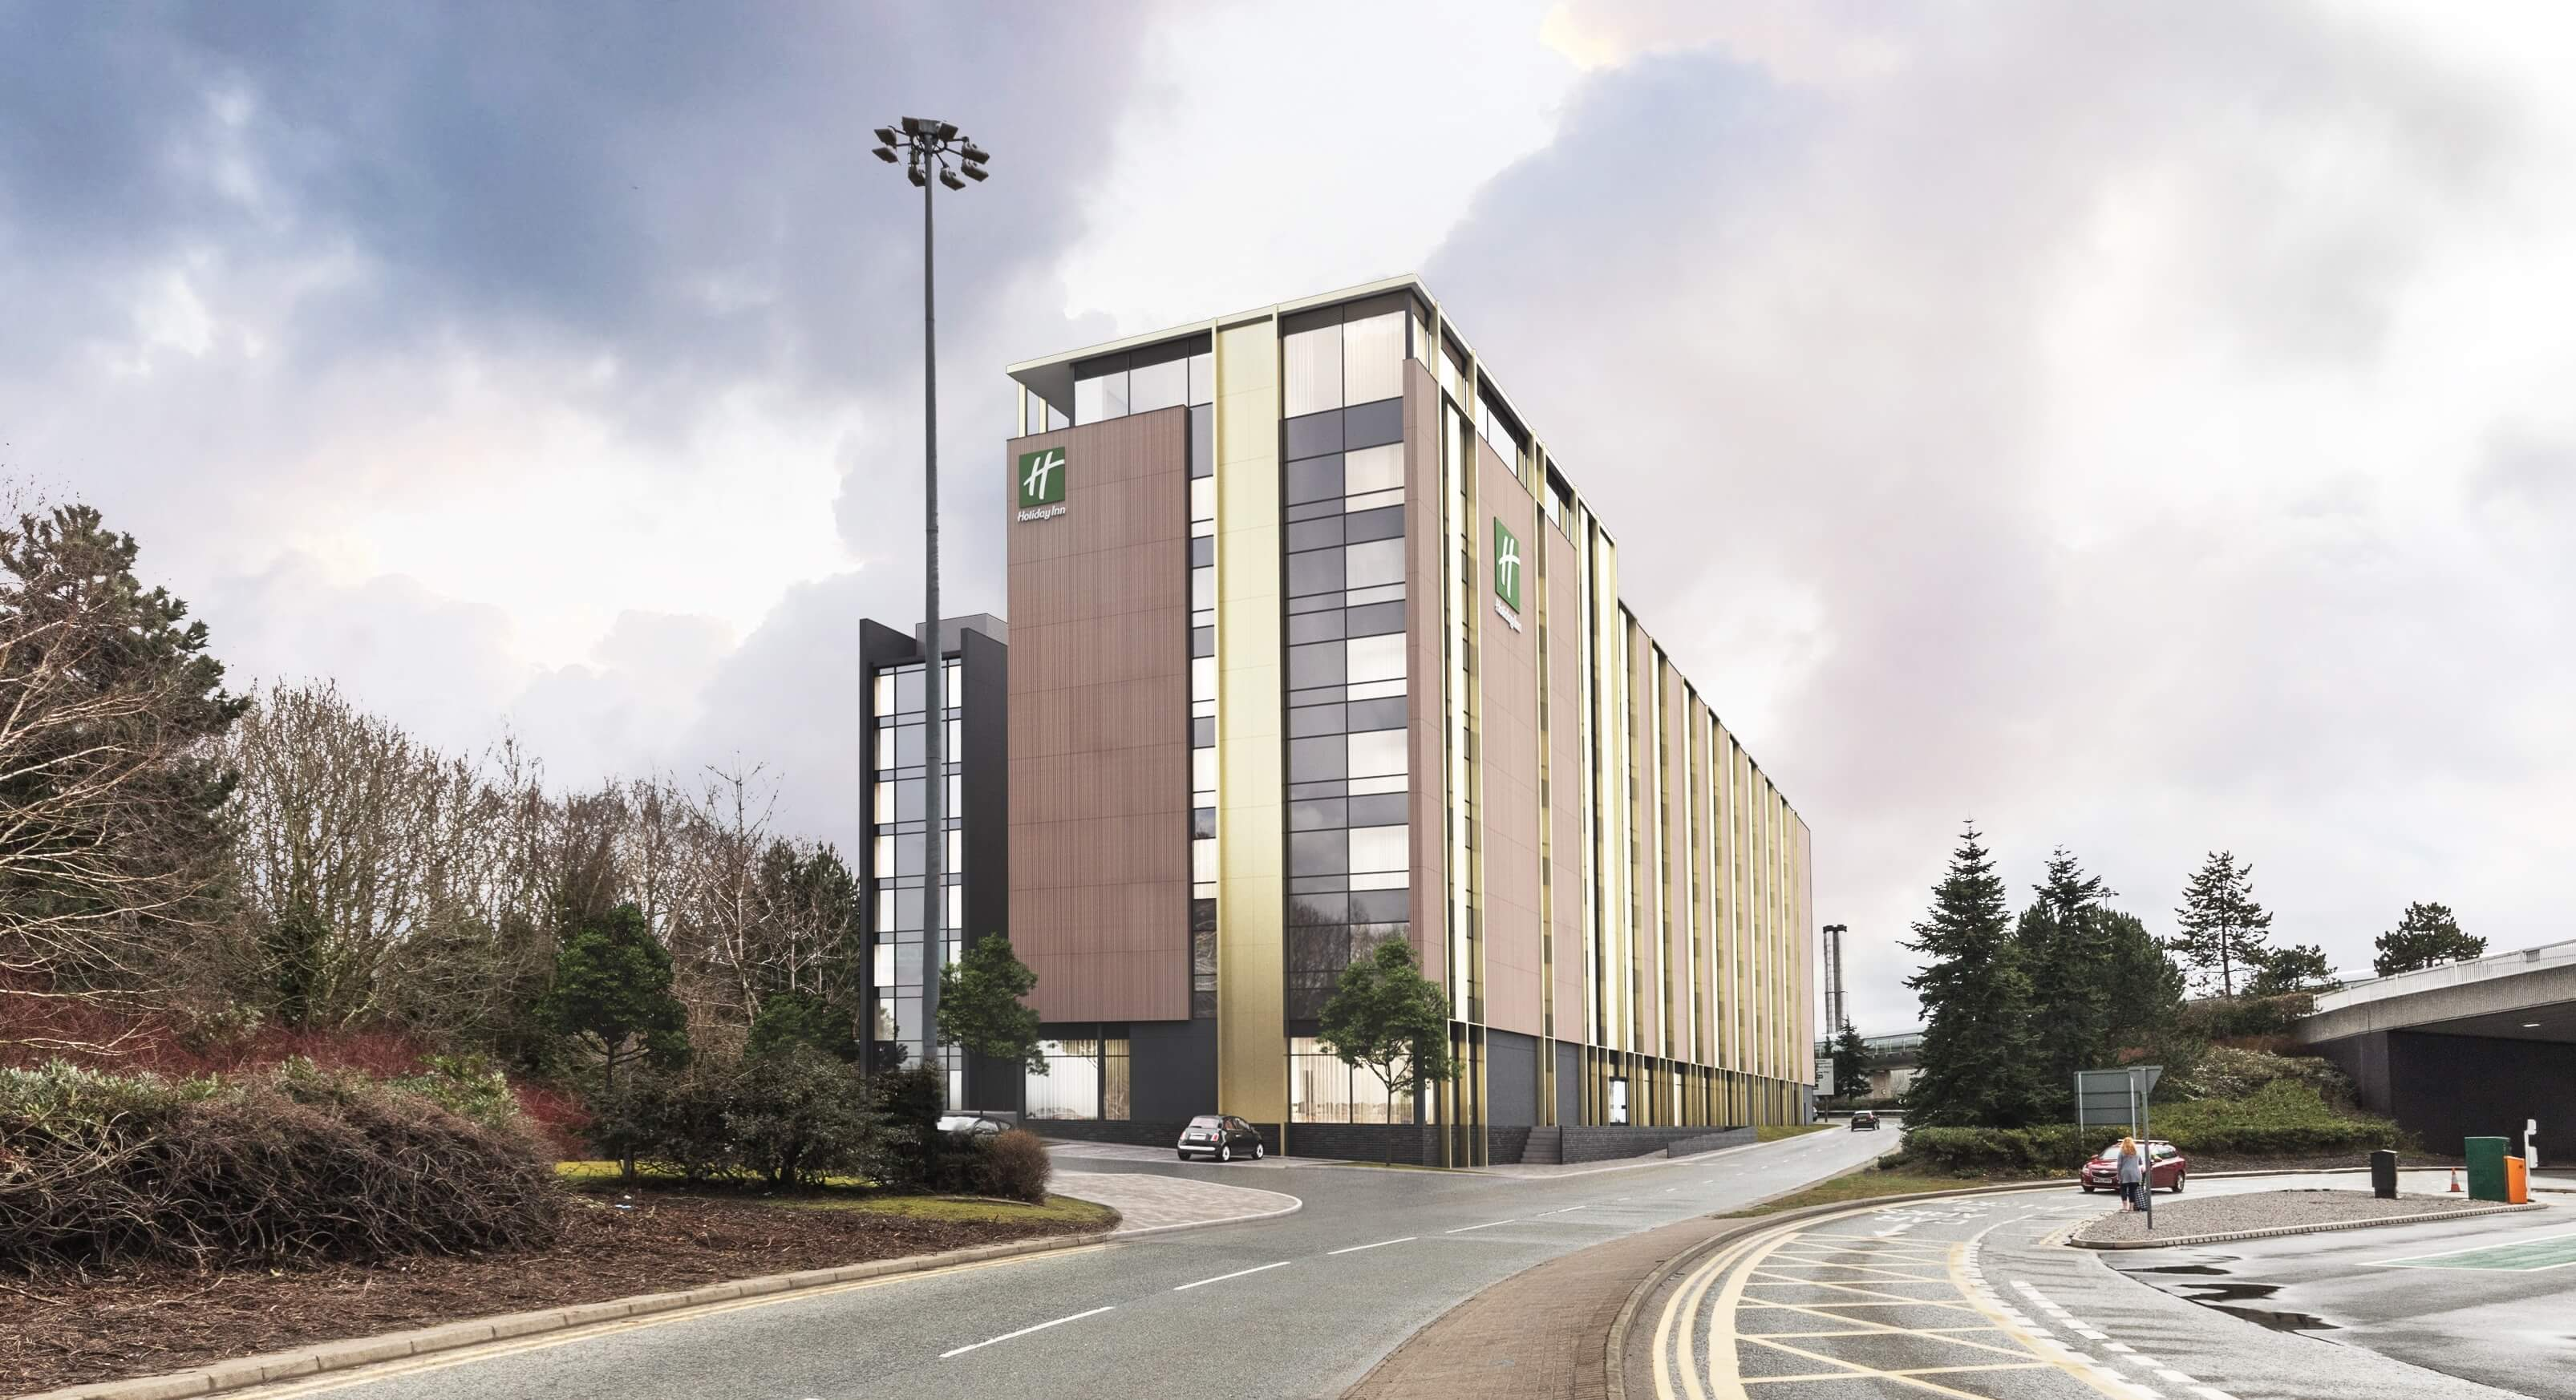 Planning approval for new 280-bed Holiday Inn and 262-bed